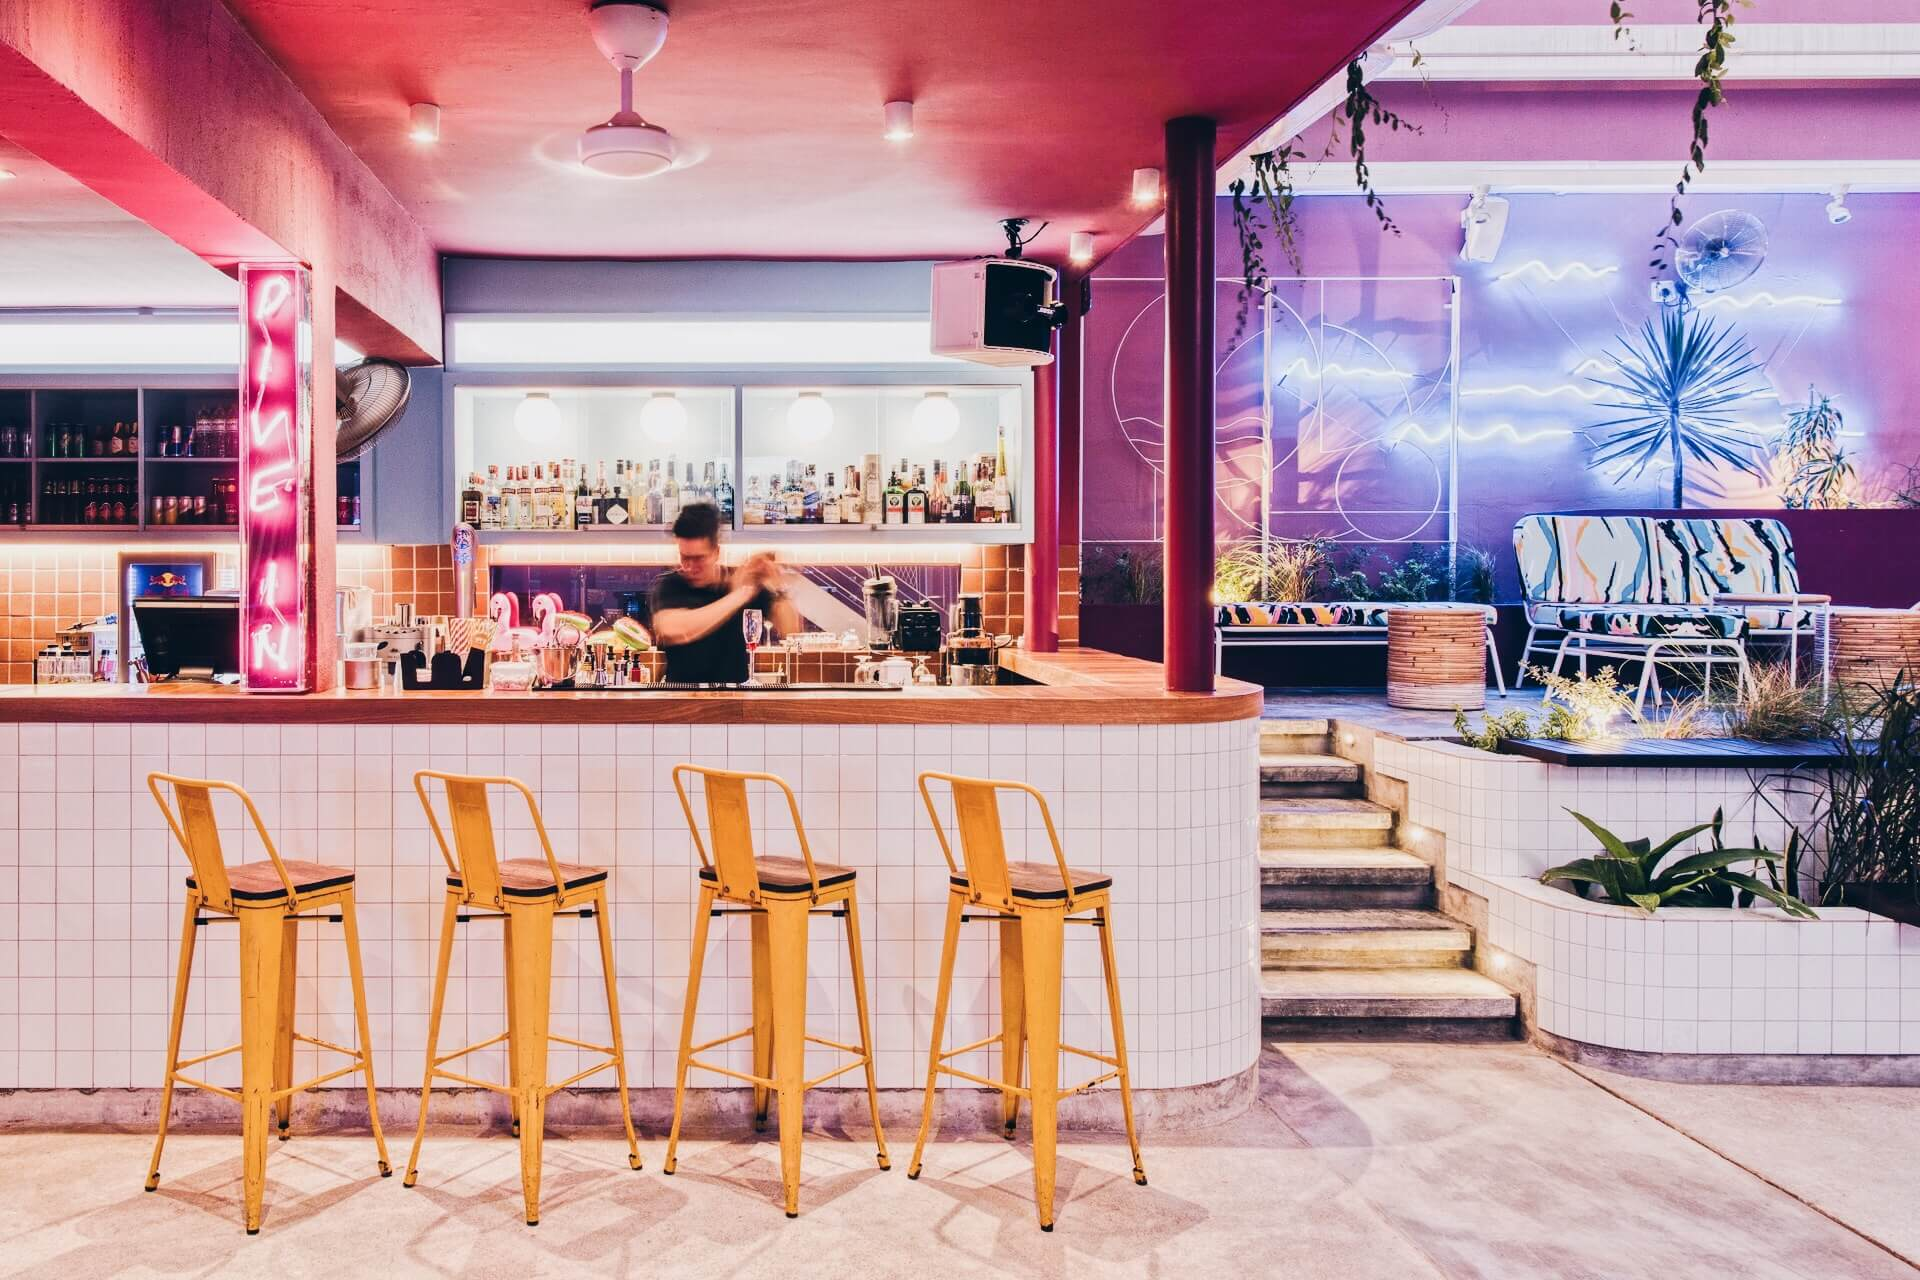 Rooftop bar with neon signs at KL Journal Hotel